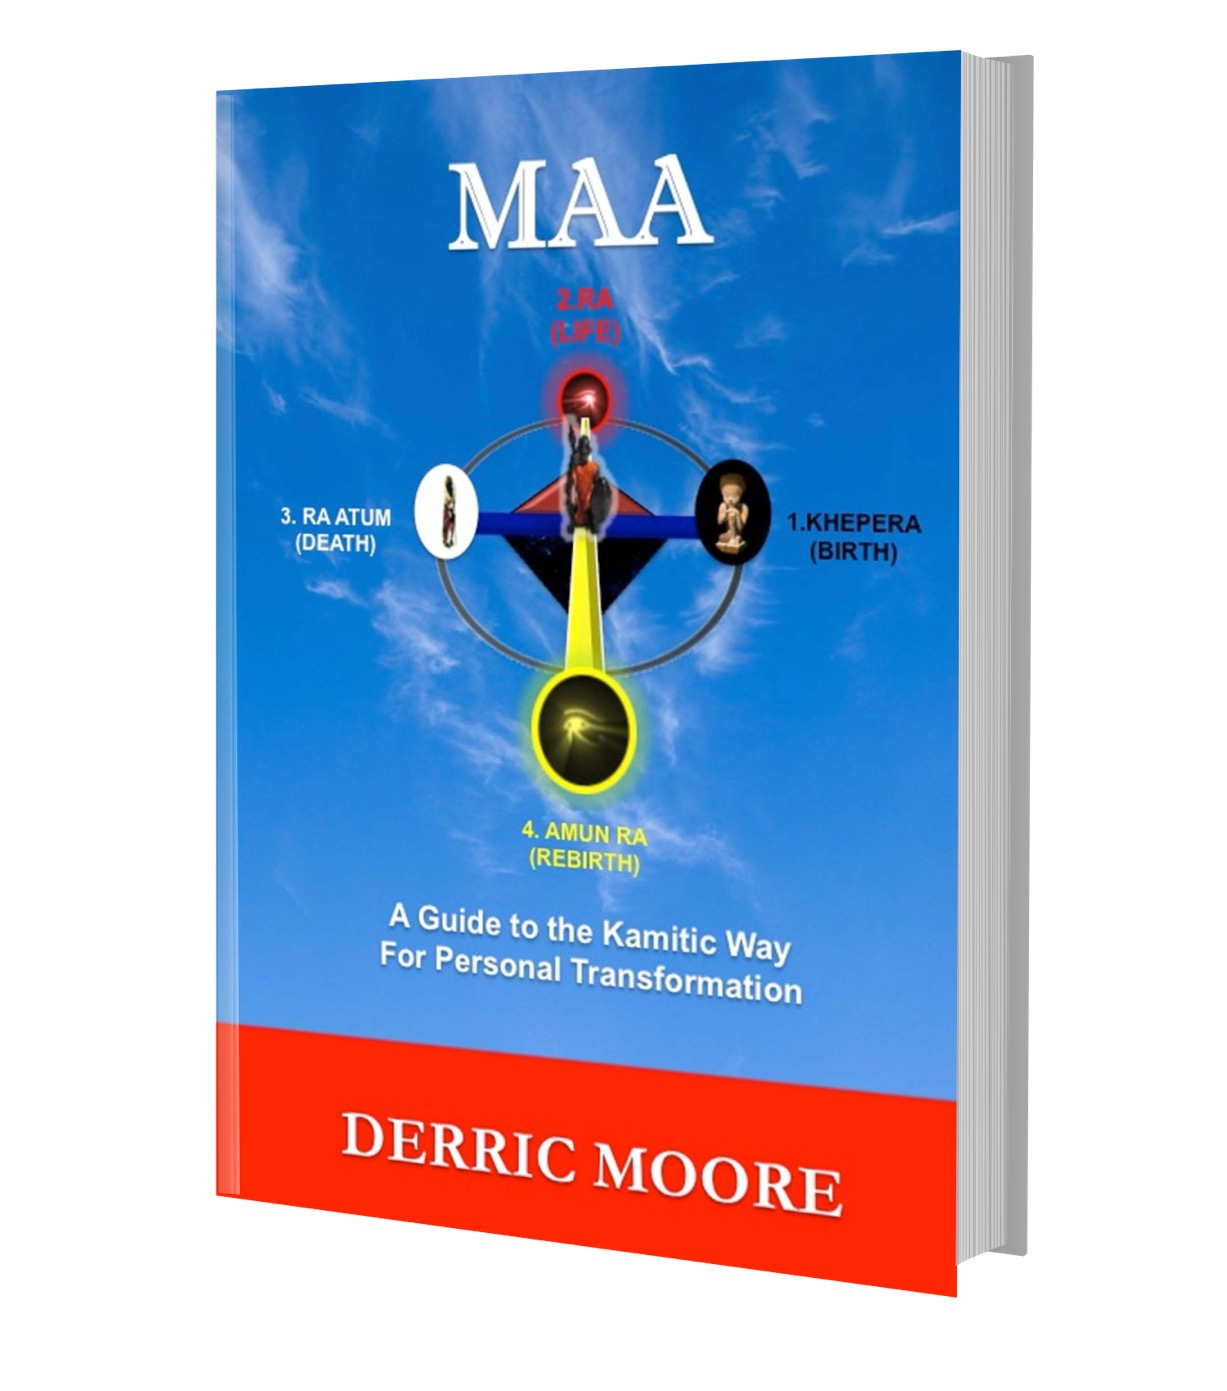 MAA: A Guide to the Kamitic Way for Personal Transformation